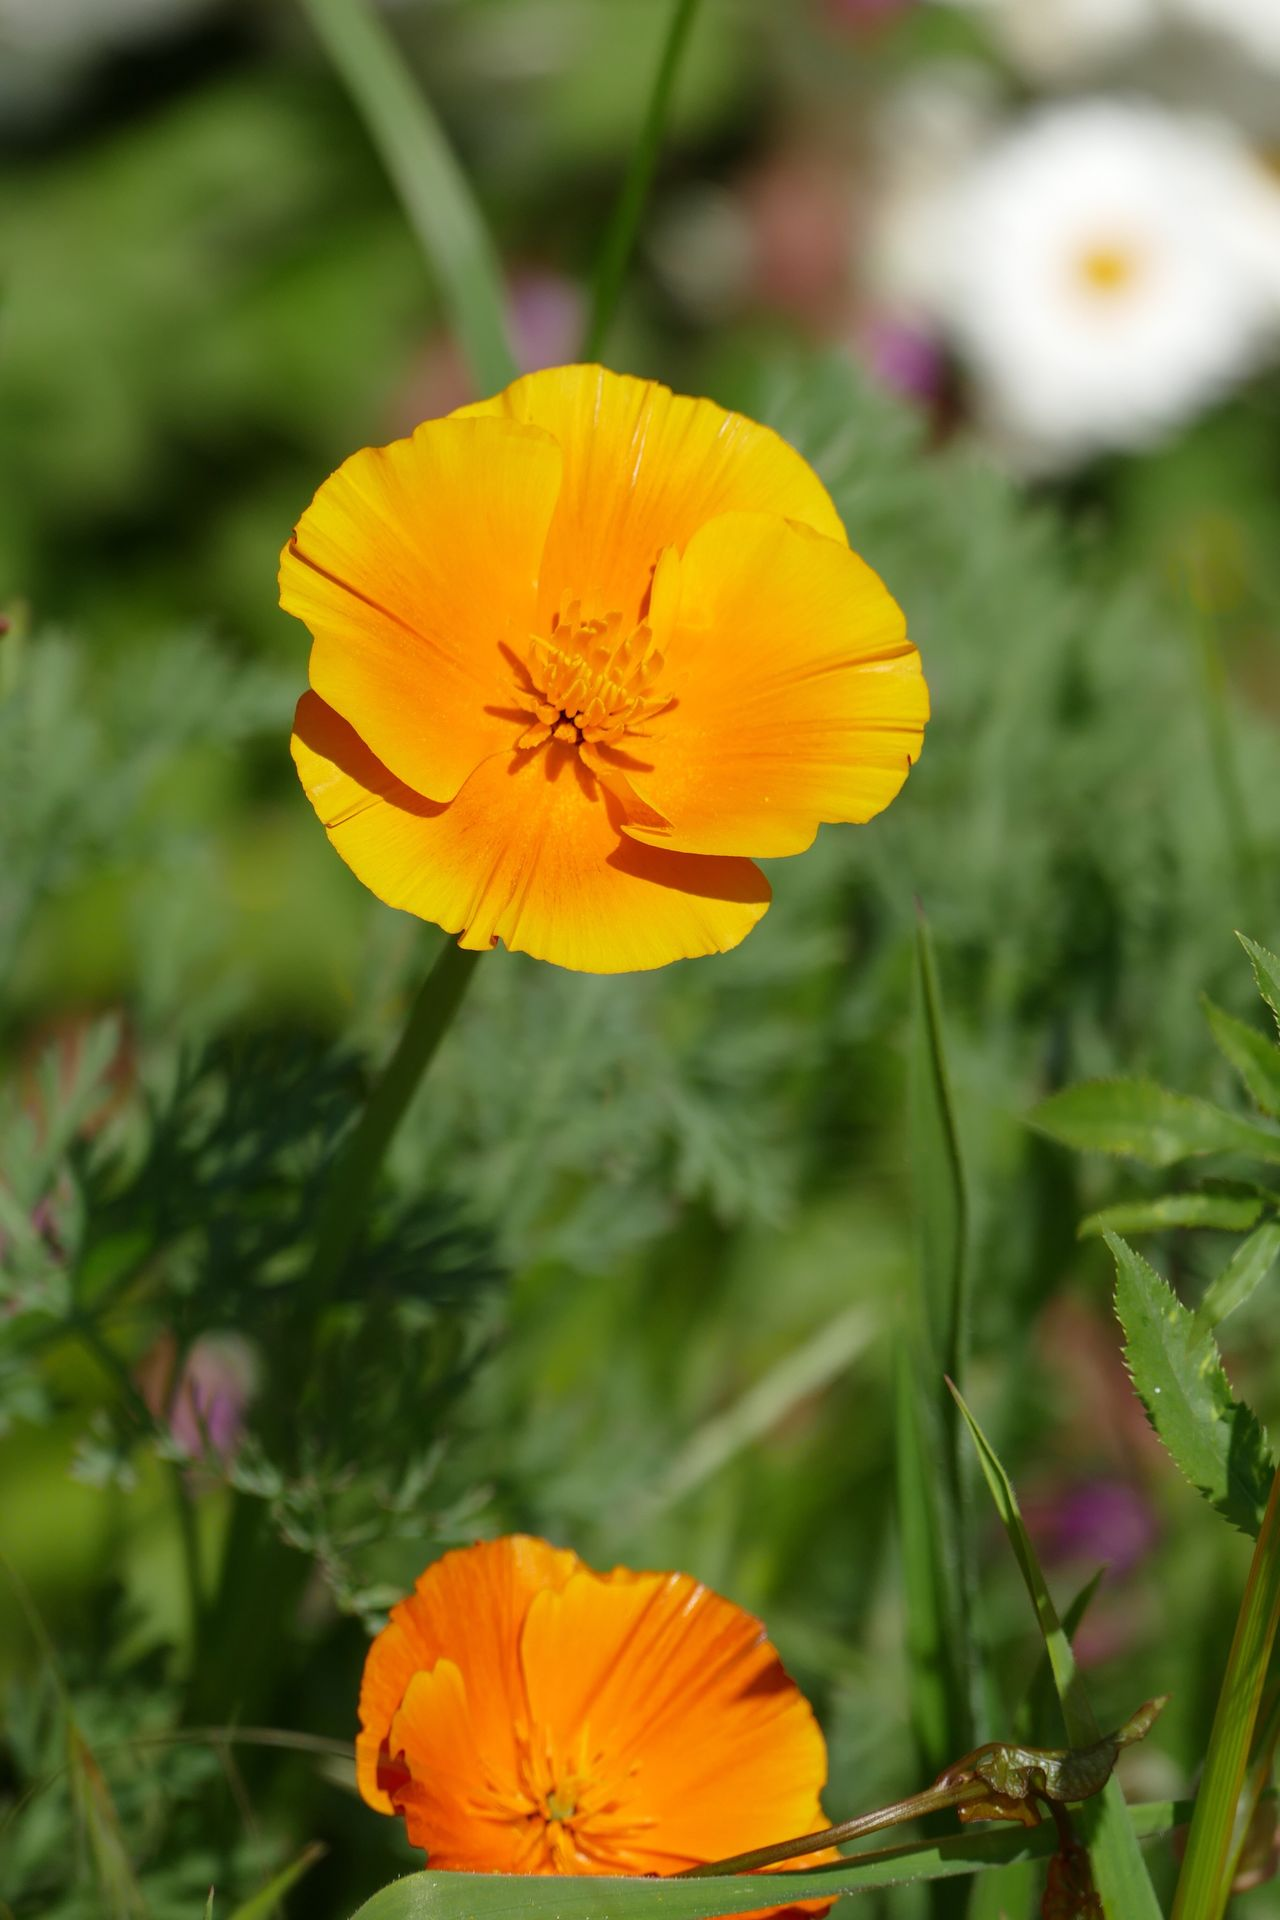 Yellow Flower Petal Nature Beauty In Nature Fragility Growth Flower Head Freshness Blooming Outdoors No People Poppy Poppy Flowers